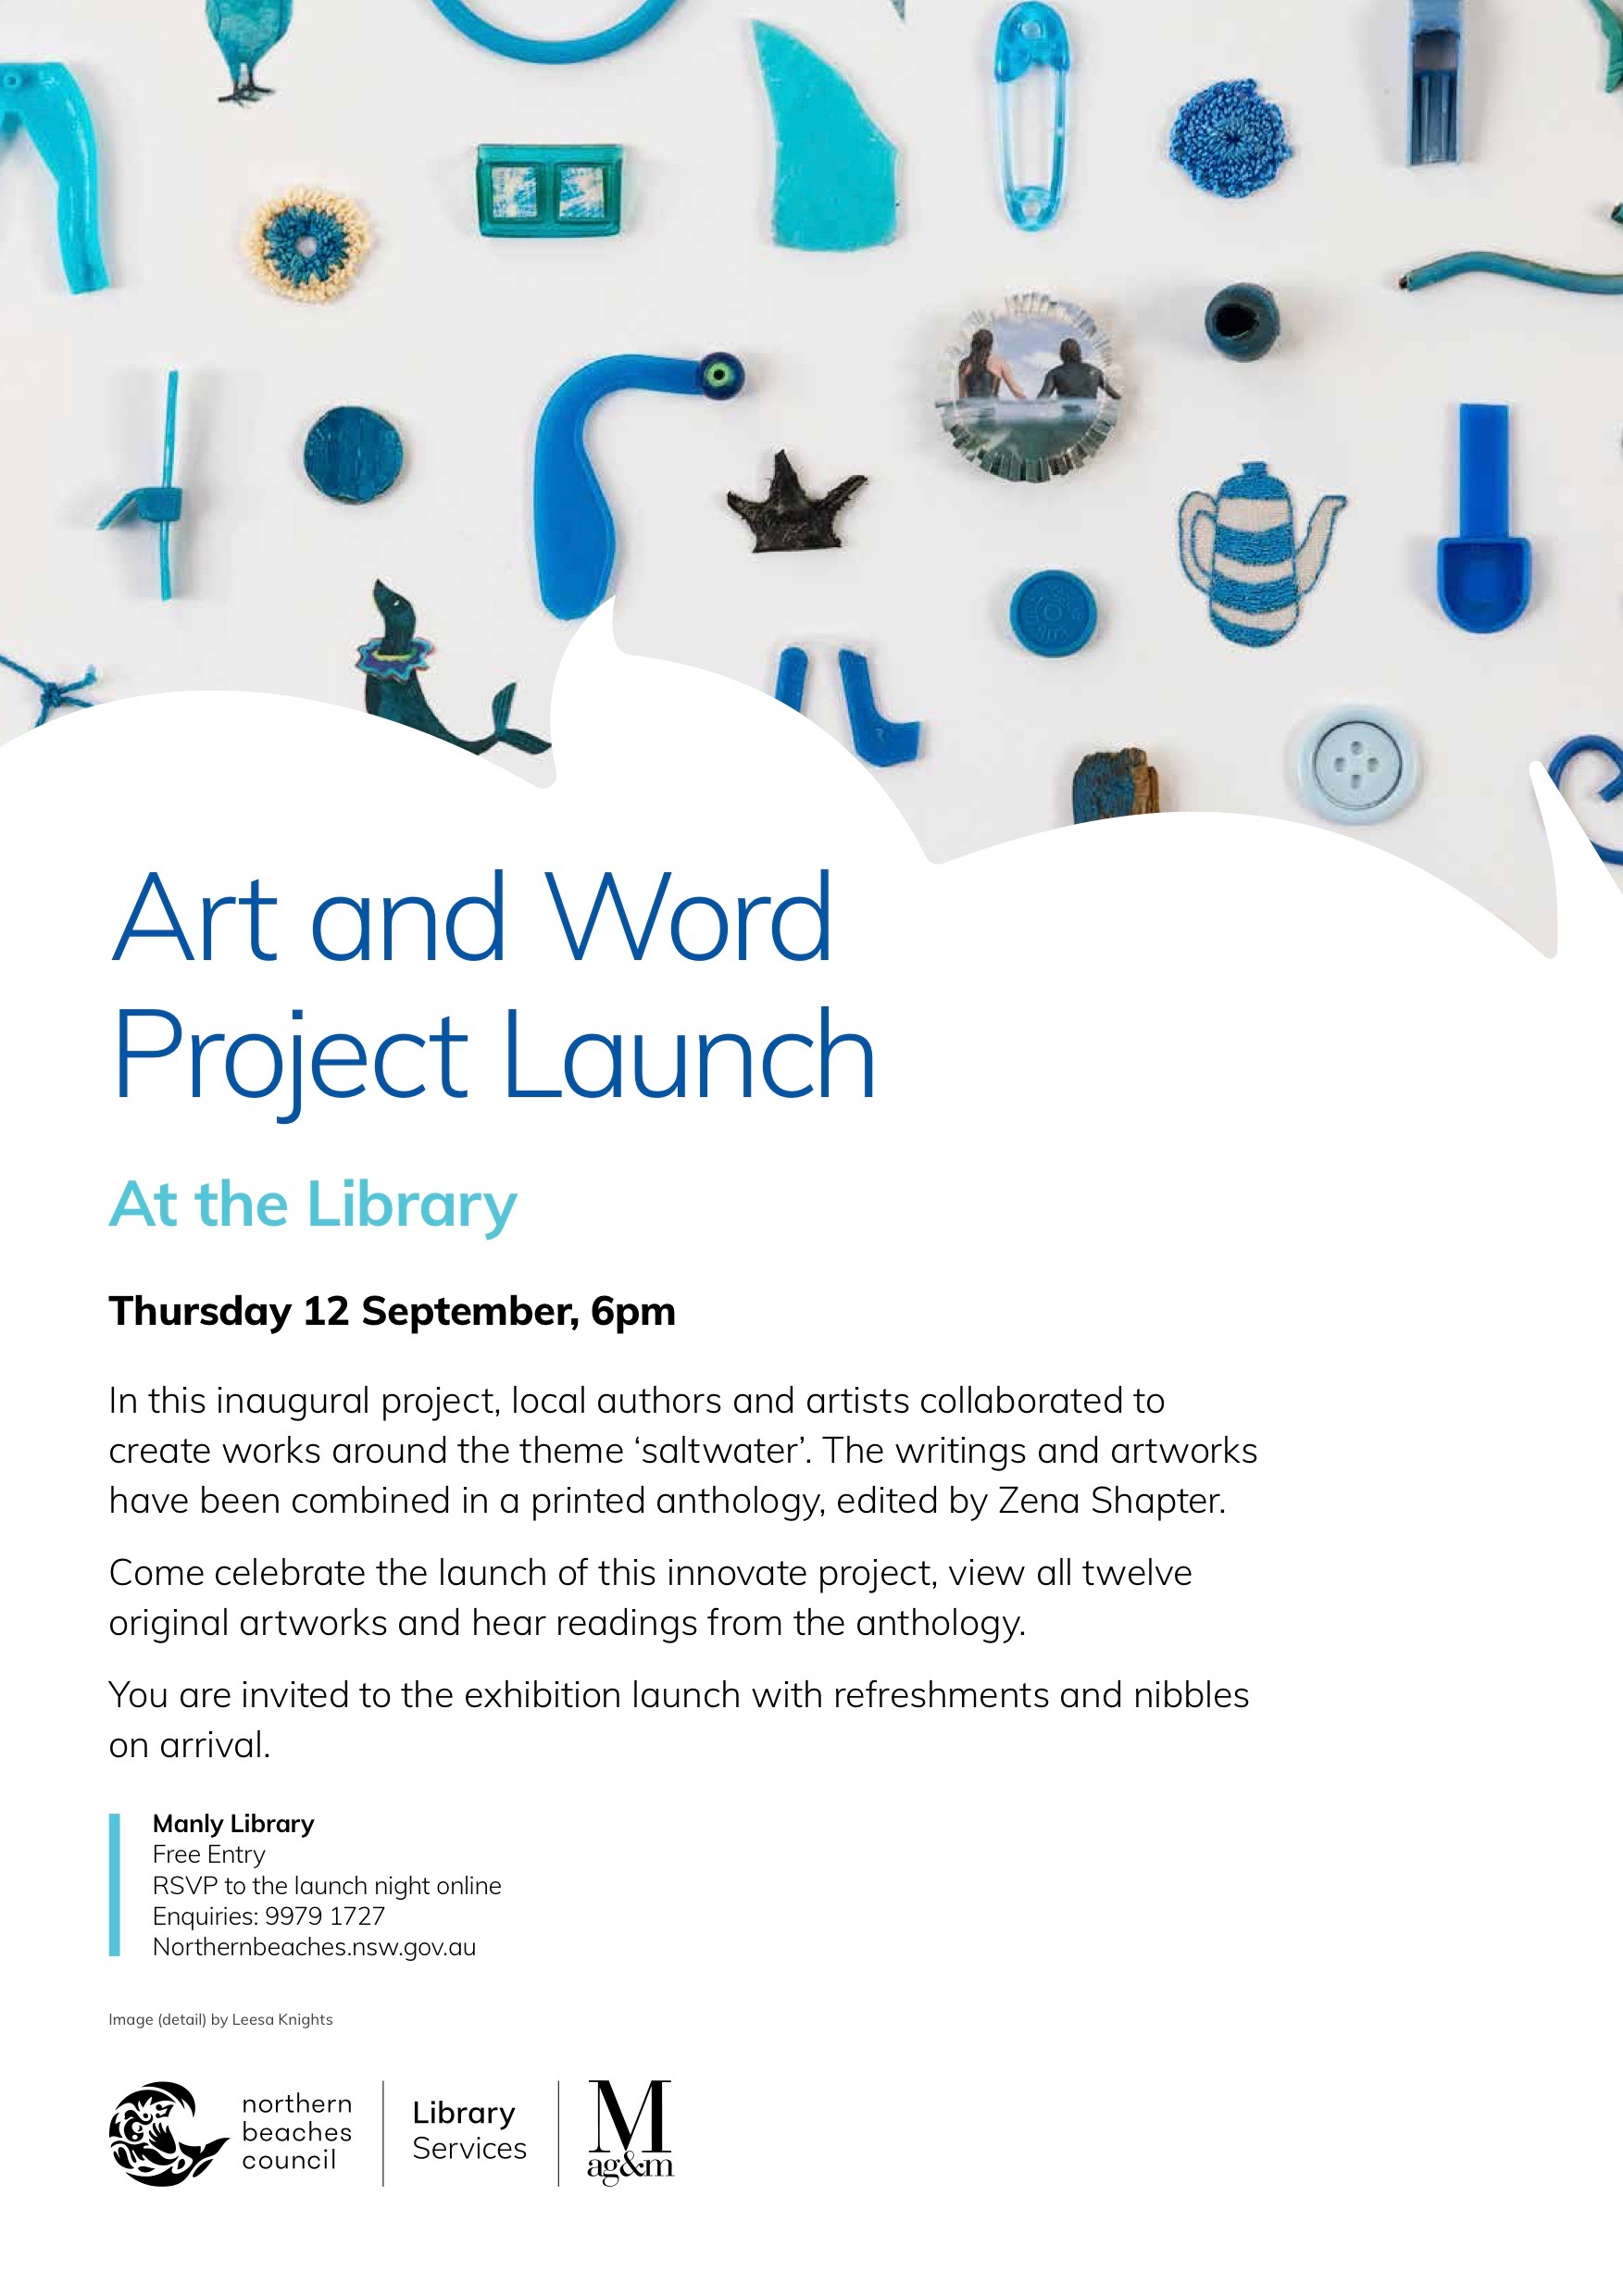 Art and Word Project Launch Invite.jpg